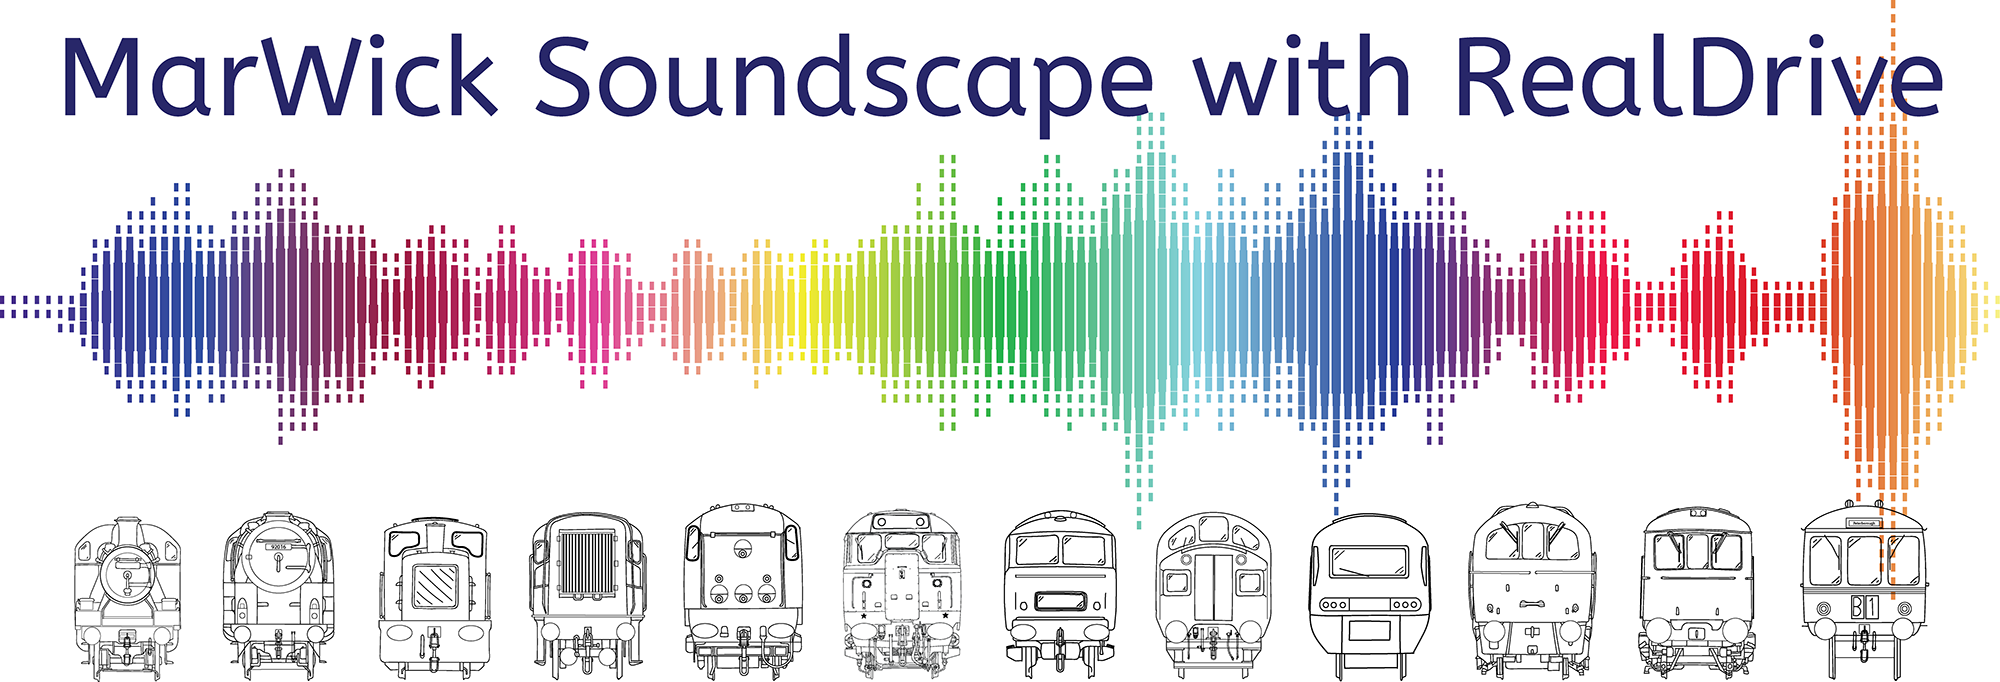 Soundscape with RealDrive